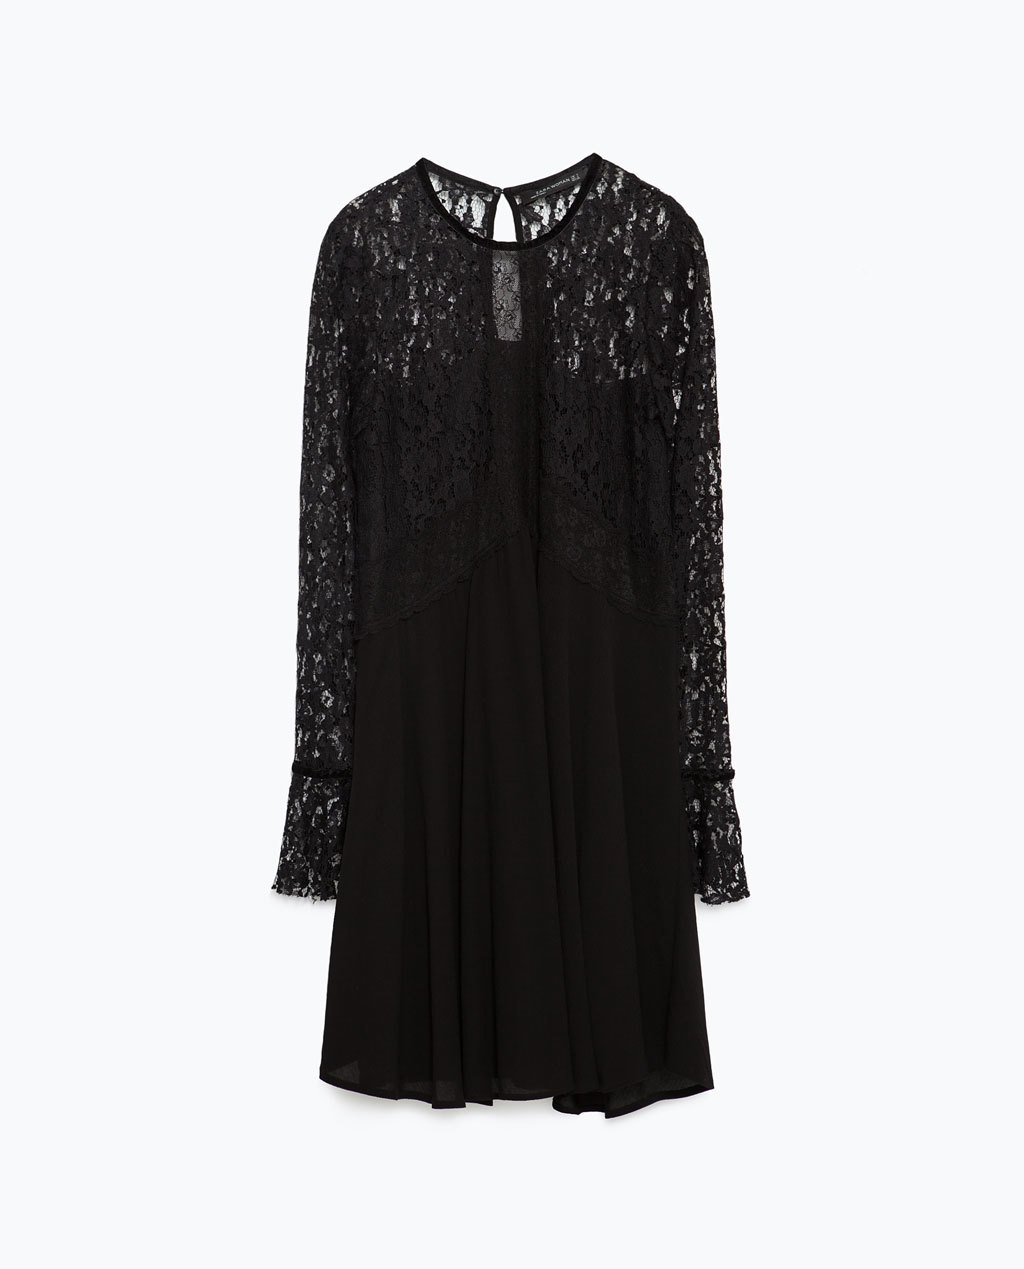 Lace Skater Dress - style: shift; length: mid thigh; predominant colour: black; occasions: evening; fit: soft a-line; fibres: polyester/polyamide - 100%; neckline: crew; hip detail: soft pleats at hip/draping at hip/flared at hip; back detail: keyhole/peephole detail at back; sleeve length: long sleeve; sleeve style: standard; texture group: lace; pattern type: fabric; pattern size: standard; pattern: patterned/print; shoulder detail: sheer at shoulder; season: a/w 2015; trends: romantic goth